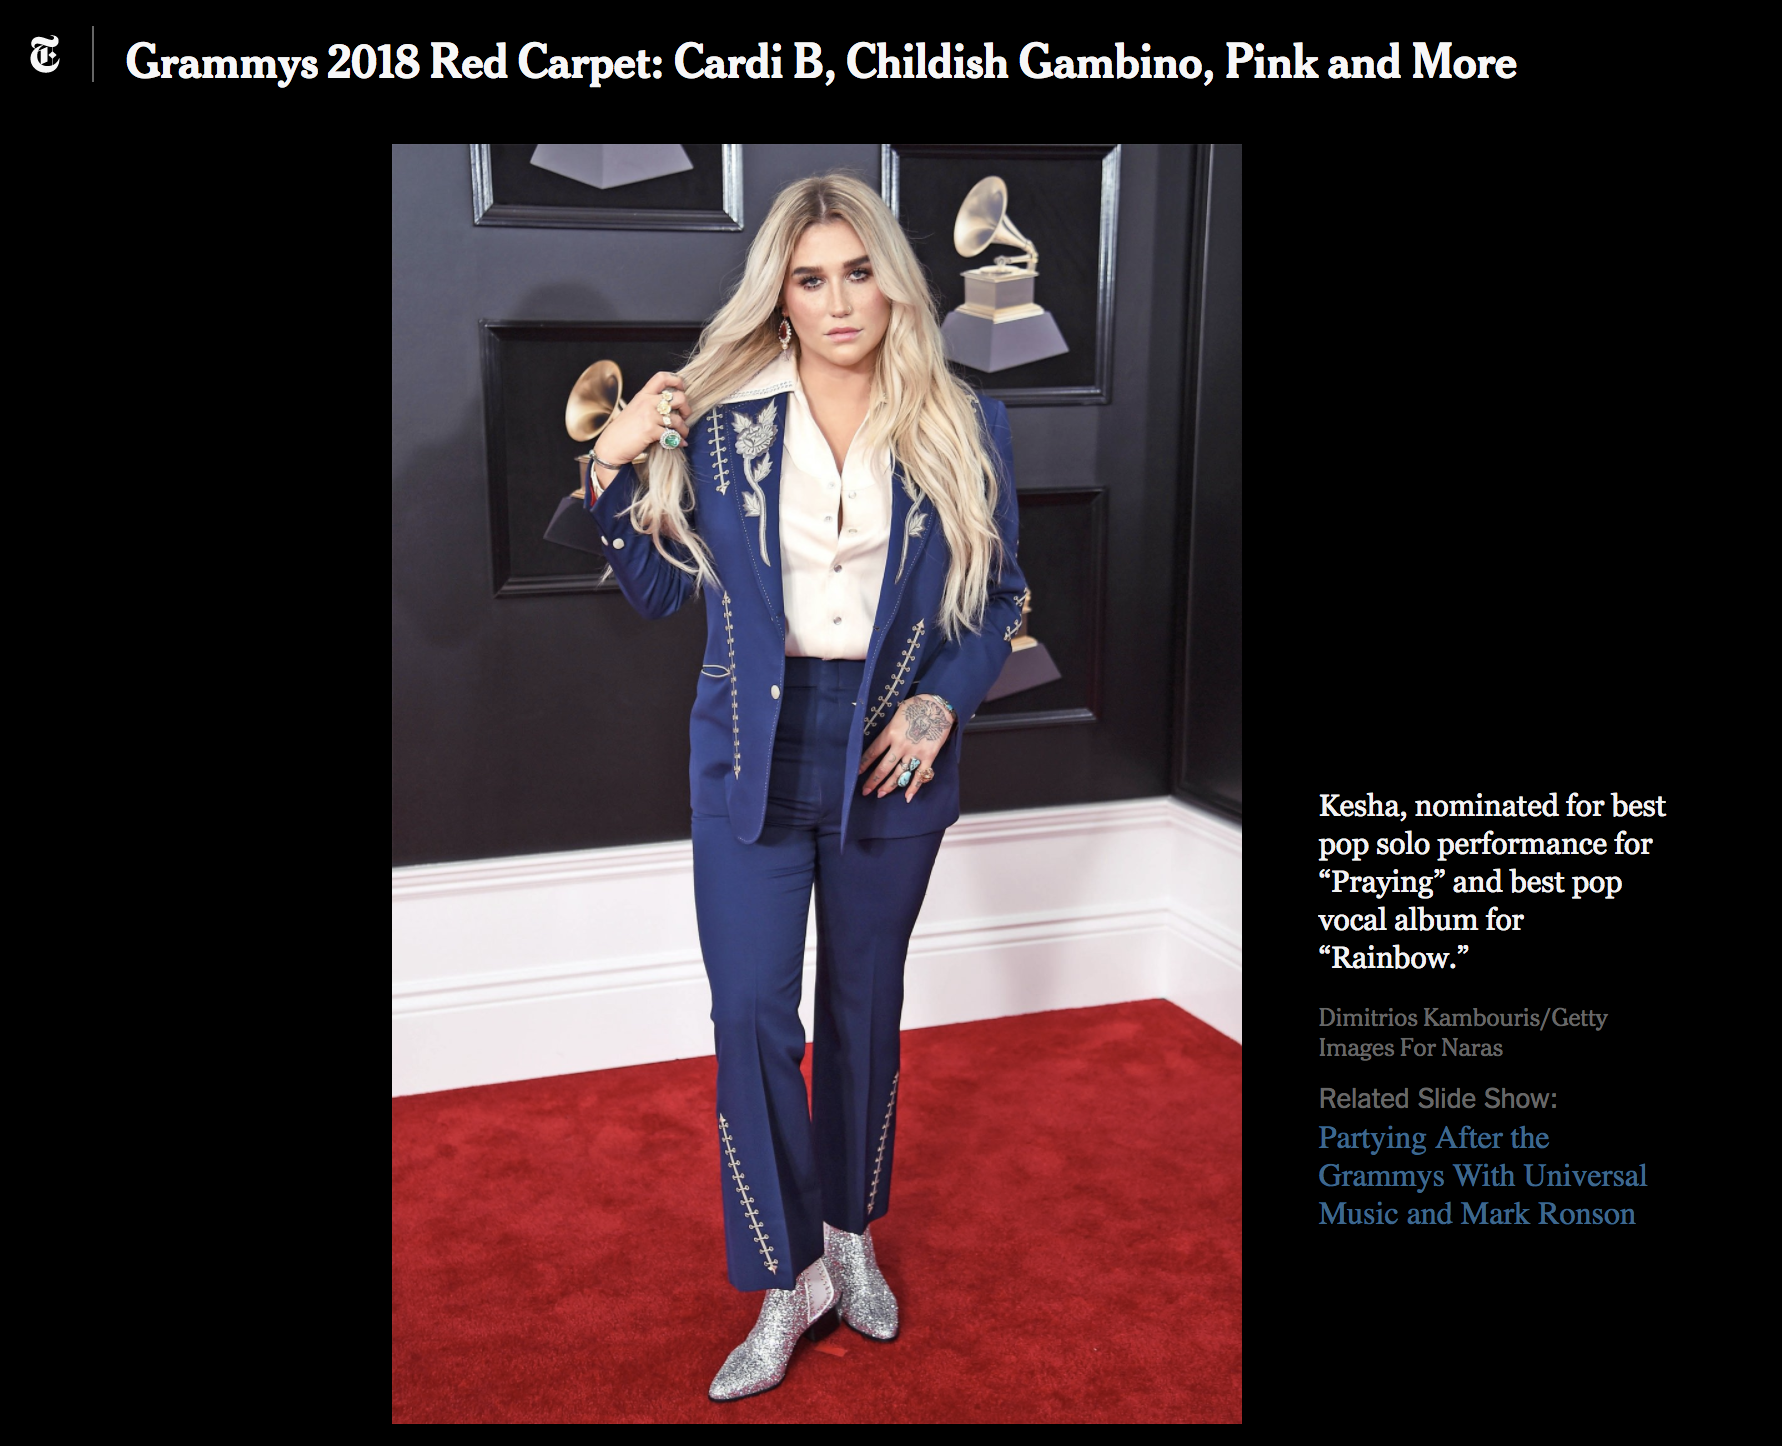 Getty Images: On-site edited for photographer Dimitrios Kambouris during the 2018 Grammy Awards.   Click here for gallery